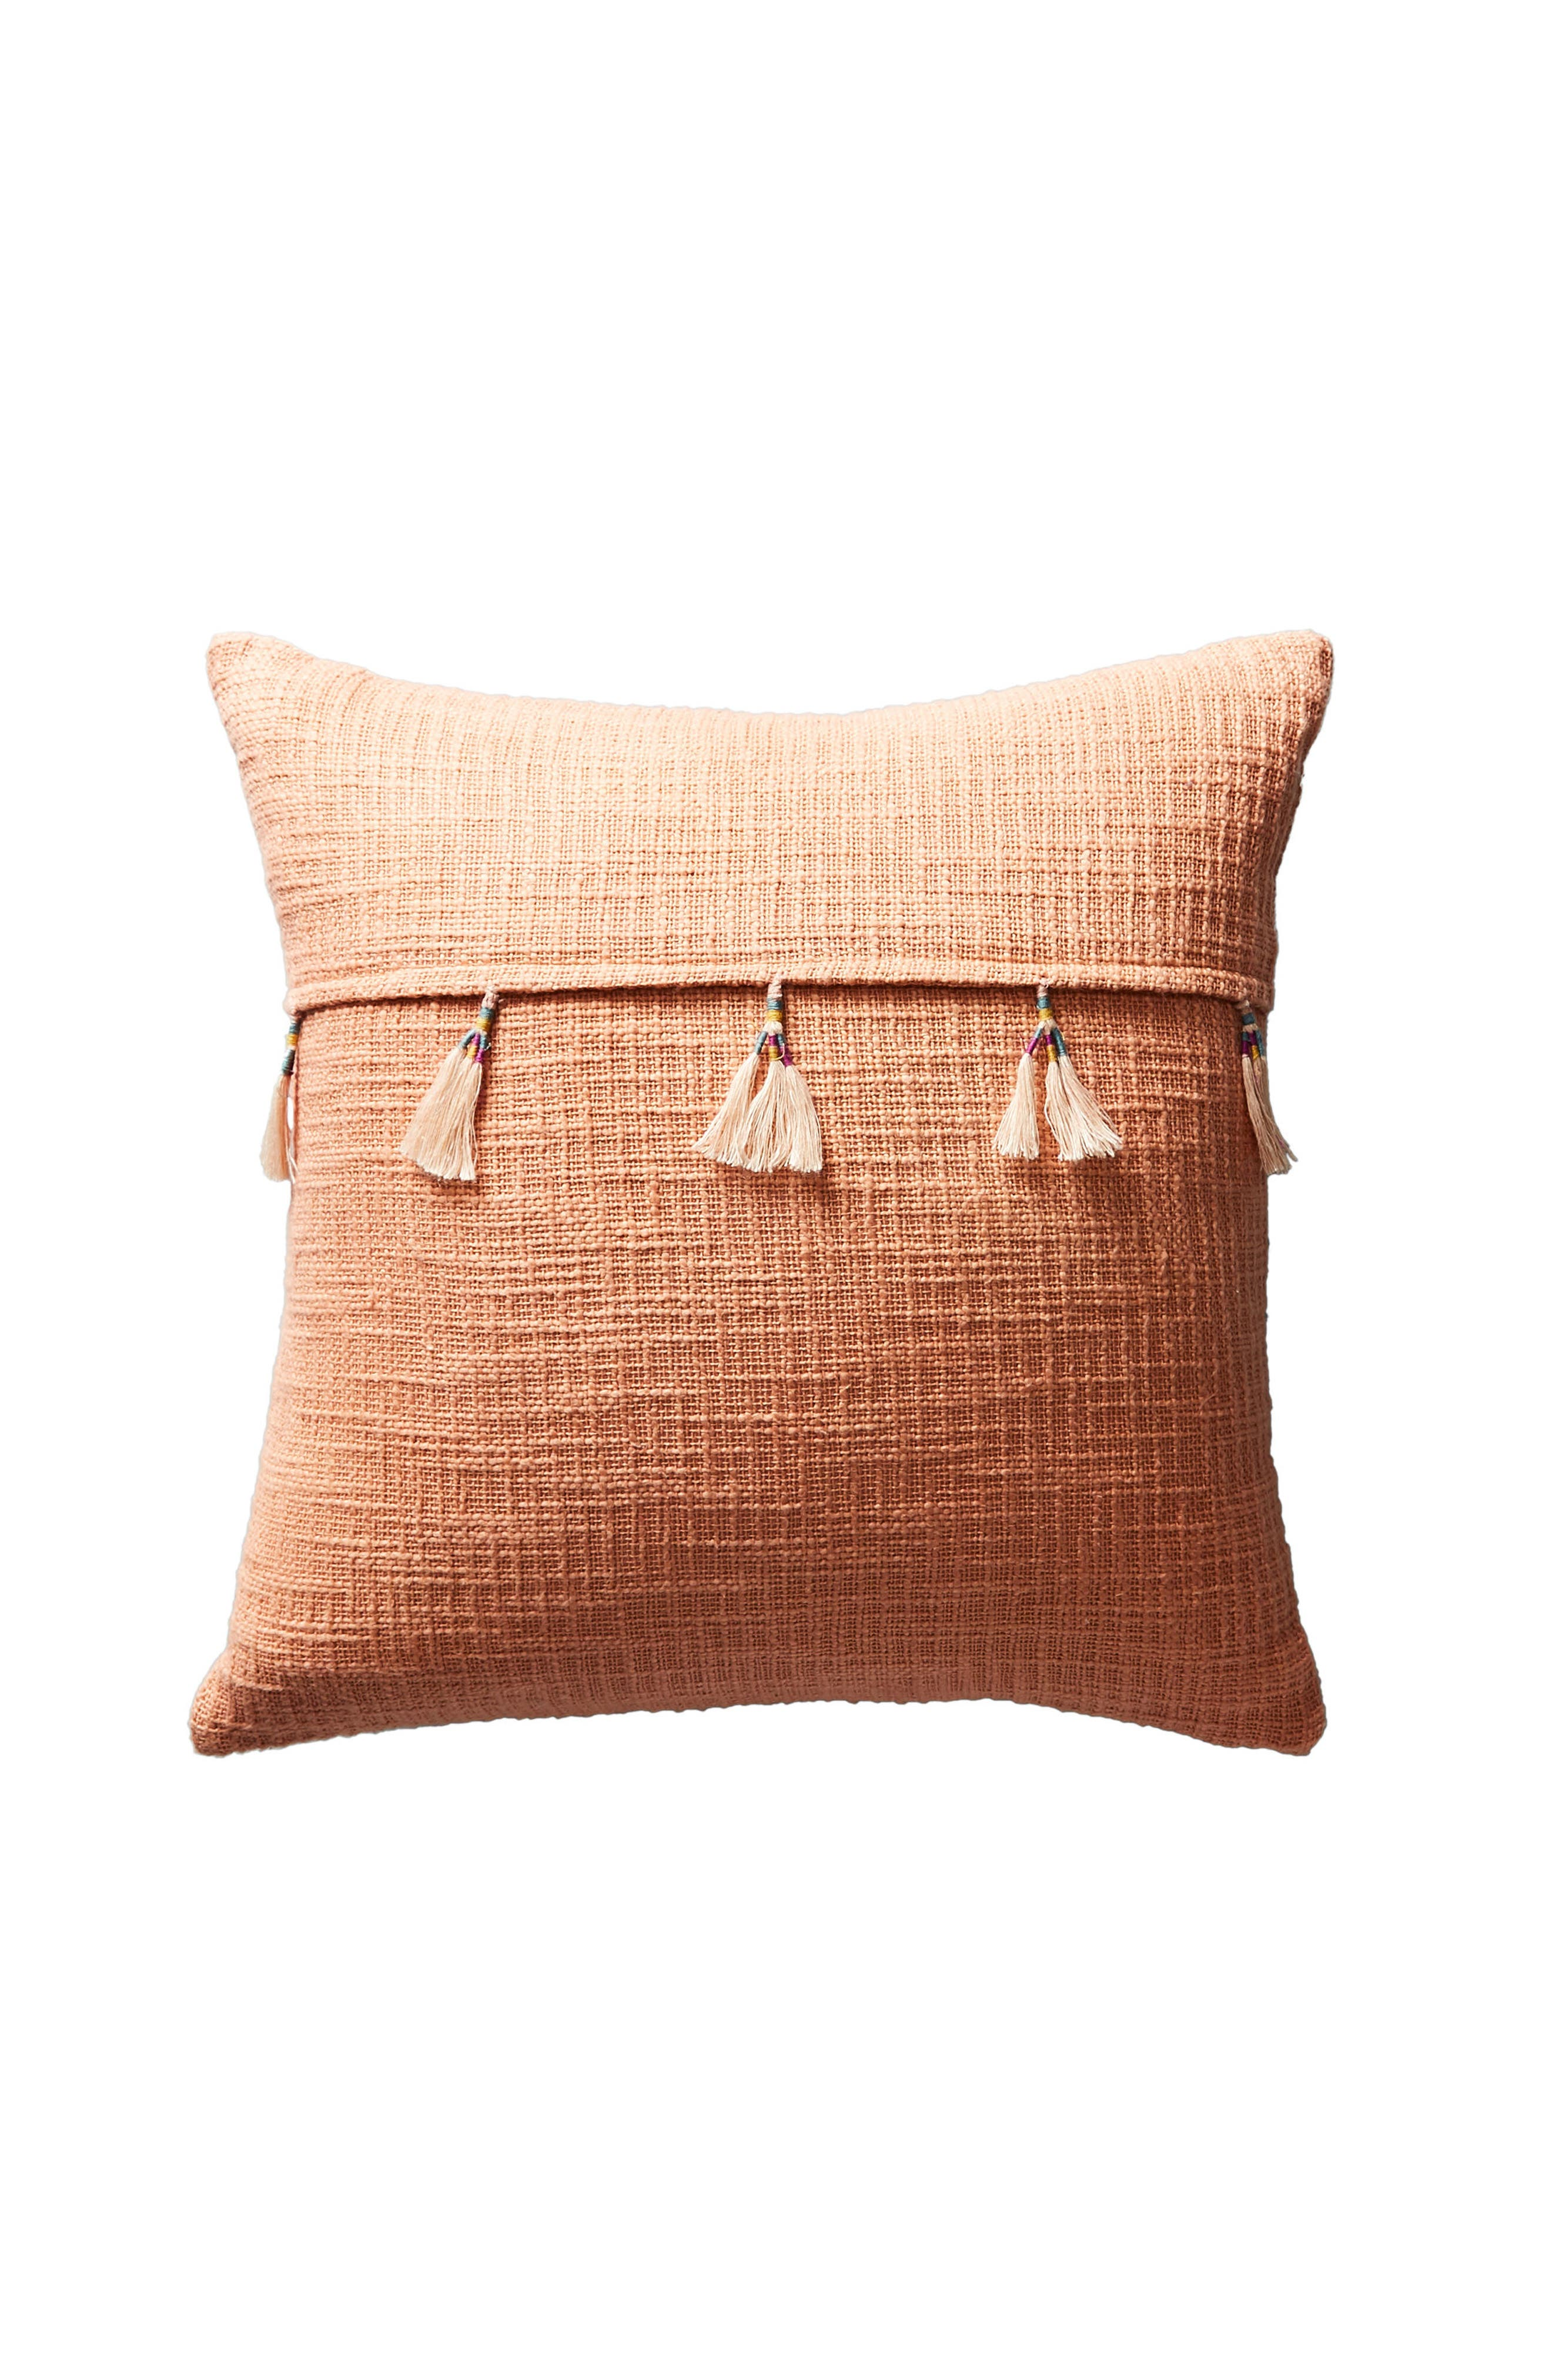 Varied Tassel Accent Pillow,                             Alternate thumbnail 3, color,                             Coral